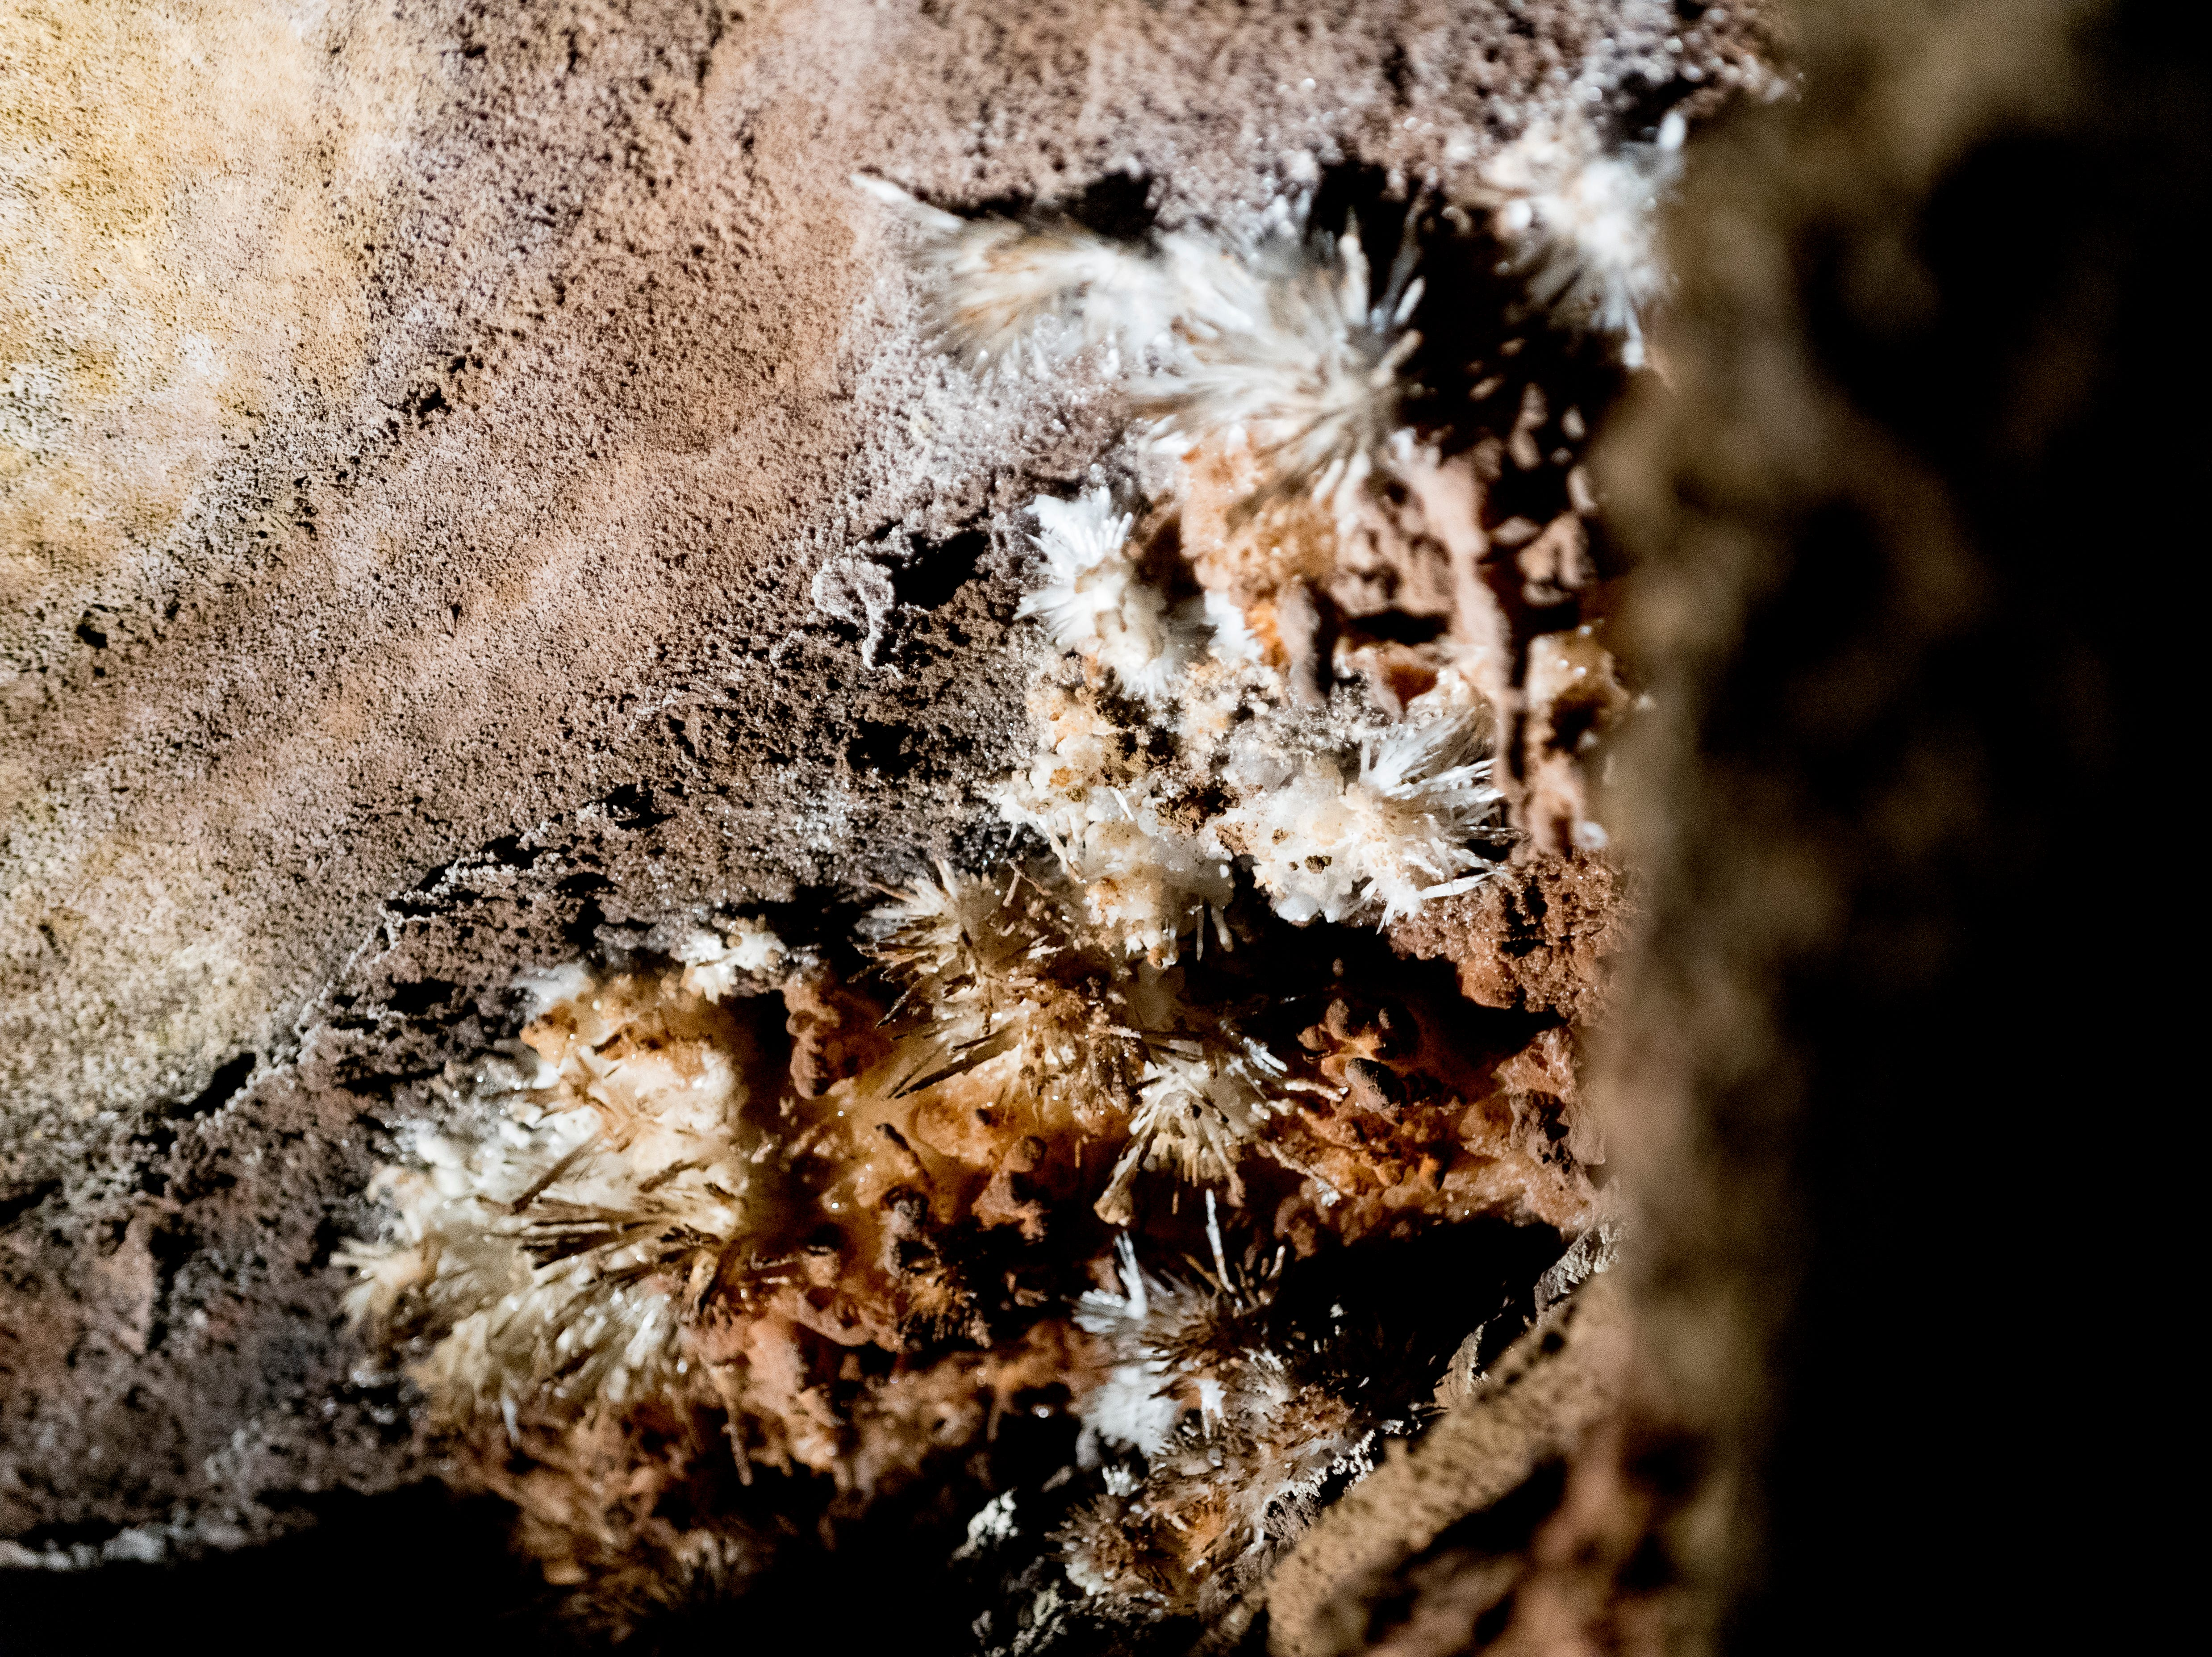 """ÒAnthodites,"""" fragile, spiky clusters commonly known as Òcave flowersÓ grow on the cave ceiling the Lost Sea Adventure underground cave attraction outside of Sweetwater, Tennessee on Wednesday, August 15, 2018. The cave system dates back some 20,000 years and today features points of interests like an old moonshine still, rock formations, Confederate Army graffiti and the popular boat ride in a natural lake stocked with 200 rainbow trout."""